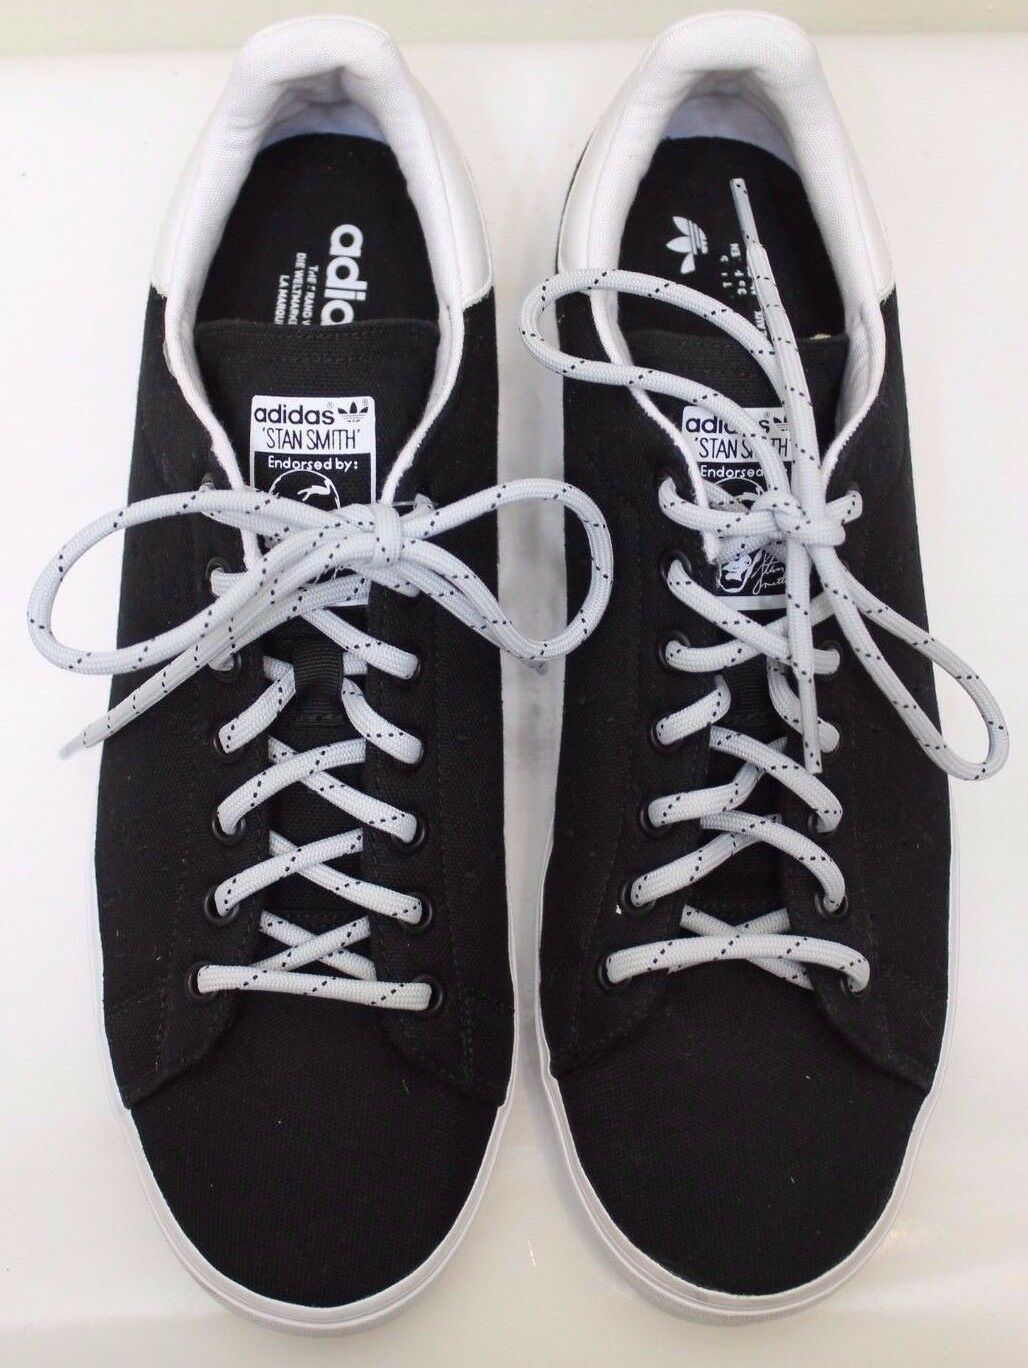 reputable site d1063 3eb53 lovely New Black Adidas Stan Smith Canvas Men Shoes Sz 12 Limited Edition  Lace Up